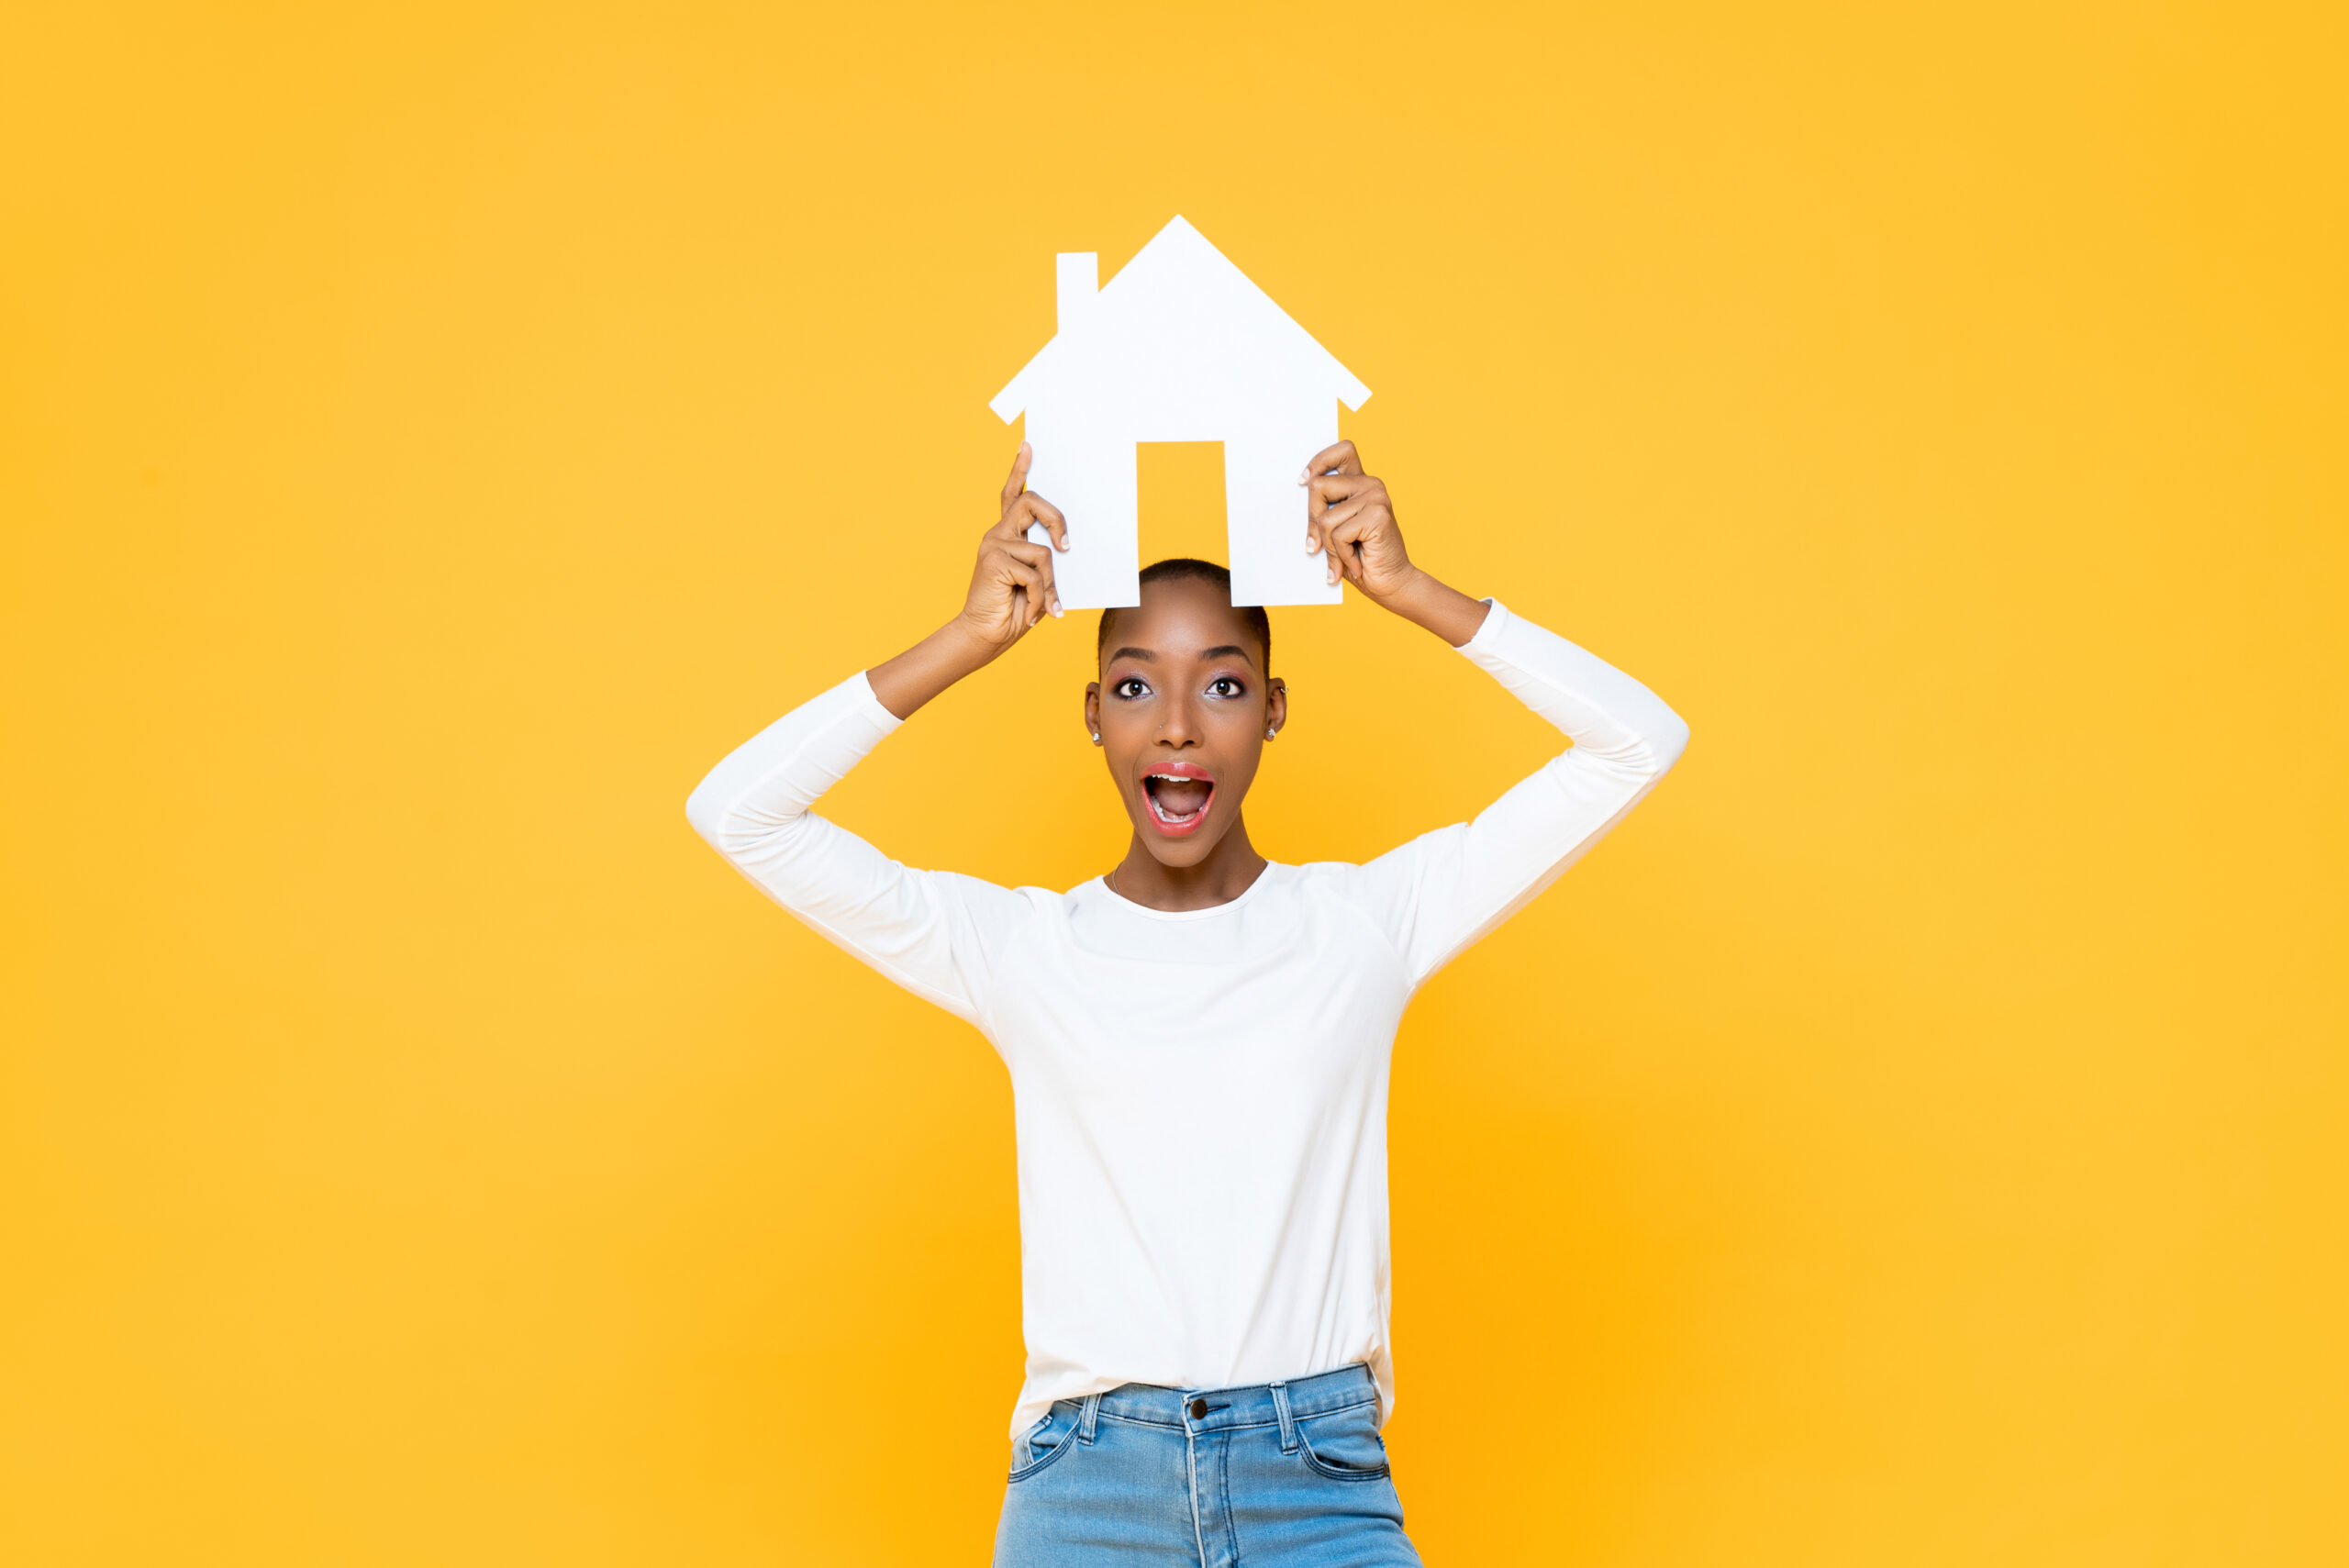 Surprised African American woman holding house sign overhead isolated on yellow background